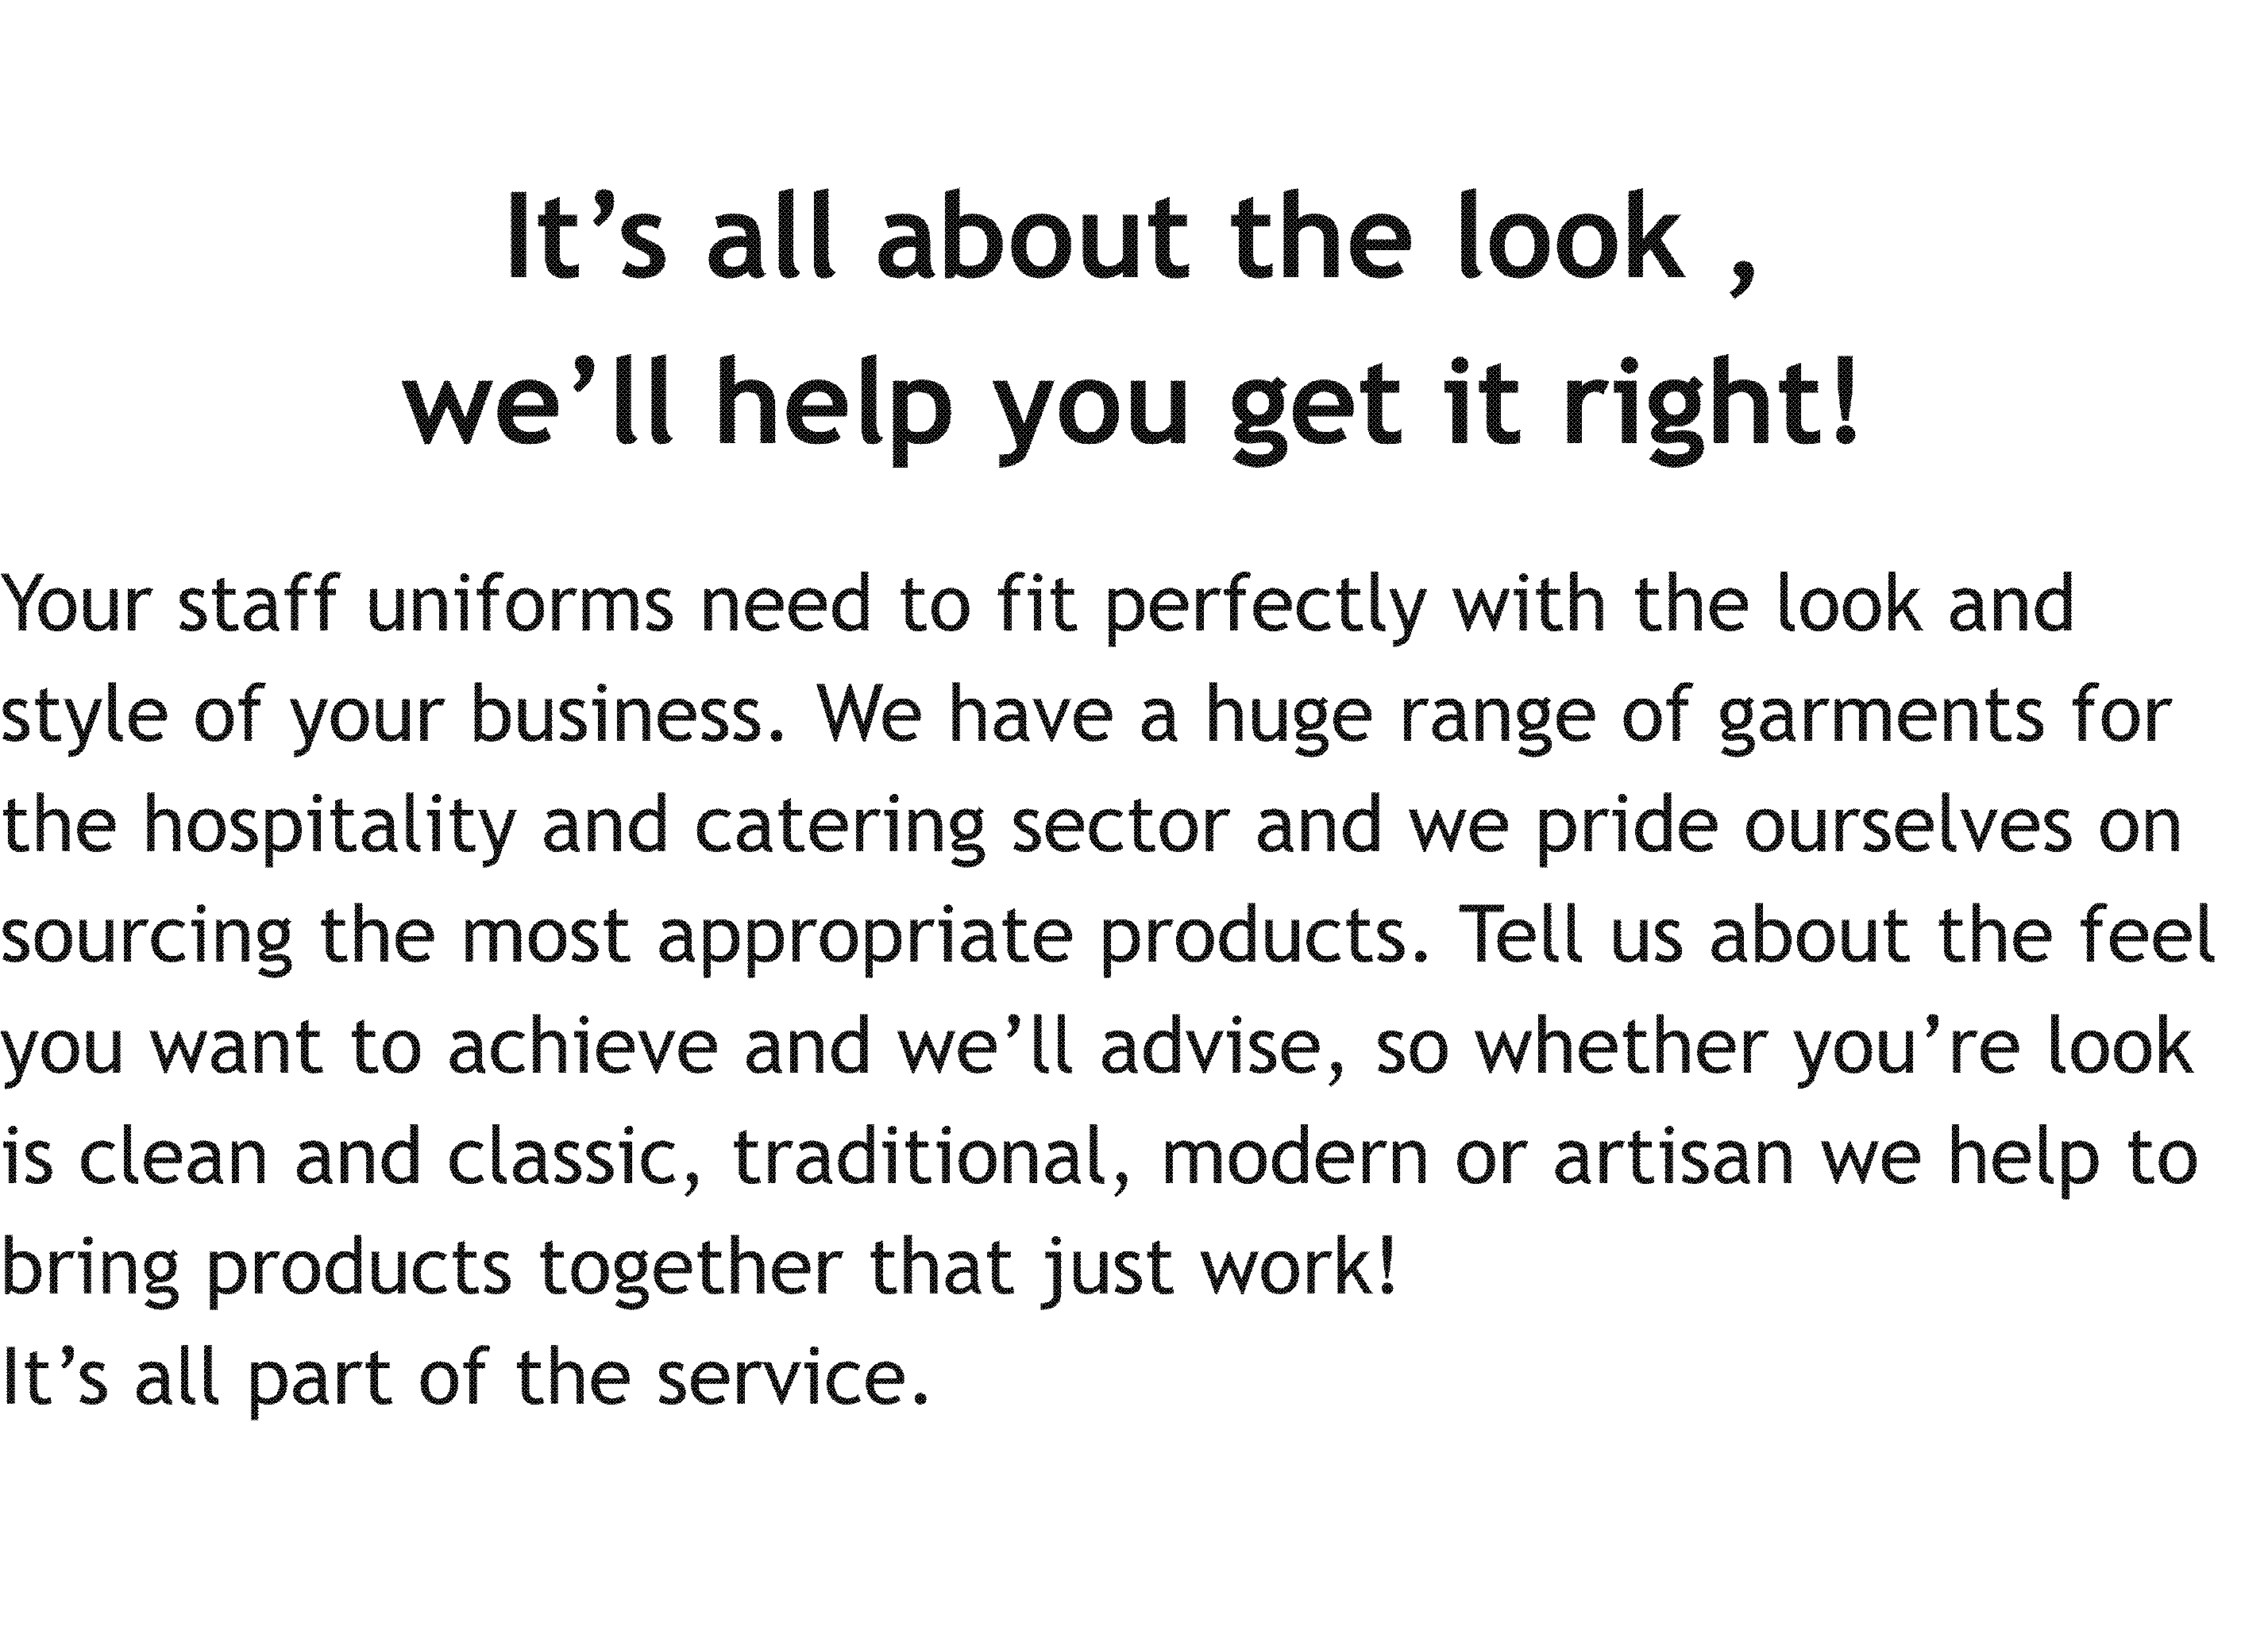 It's all about the look , we'll help you get it right! Your staff uniforms need to fit perfectly with the look and style of your business. We have a huge range of garments for the hospitality and catering sector and we pride ourselves on sourcing the most appropriate products. Tell us about the feel you want to achieve and we'll advise, so whether you're look is clean and classic, traditional, modern or artisan we help to bring products together that just work! It's all part of the service.